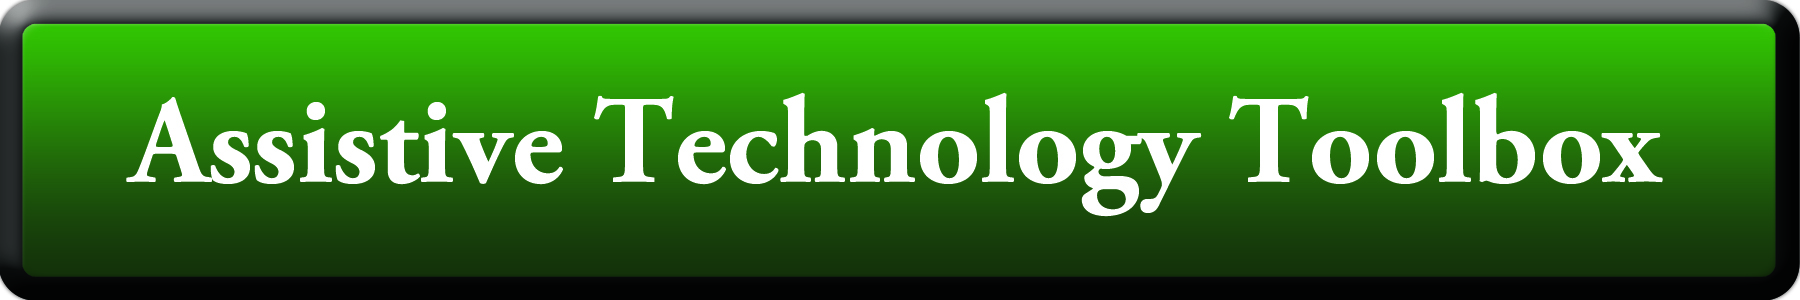 Assistive Technology Toolbox